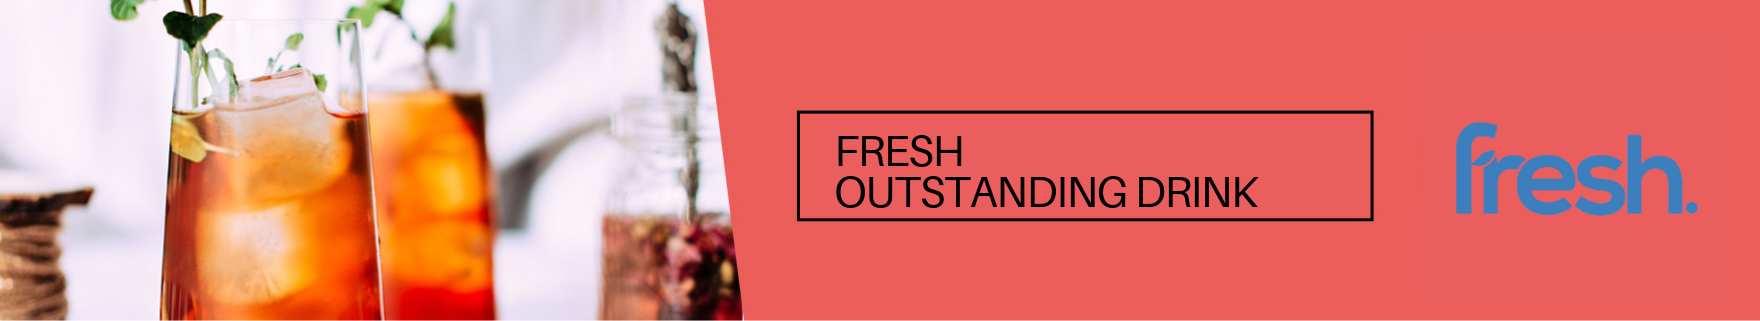 Fresh-Drink-1760x321px-banner.png